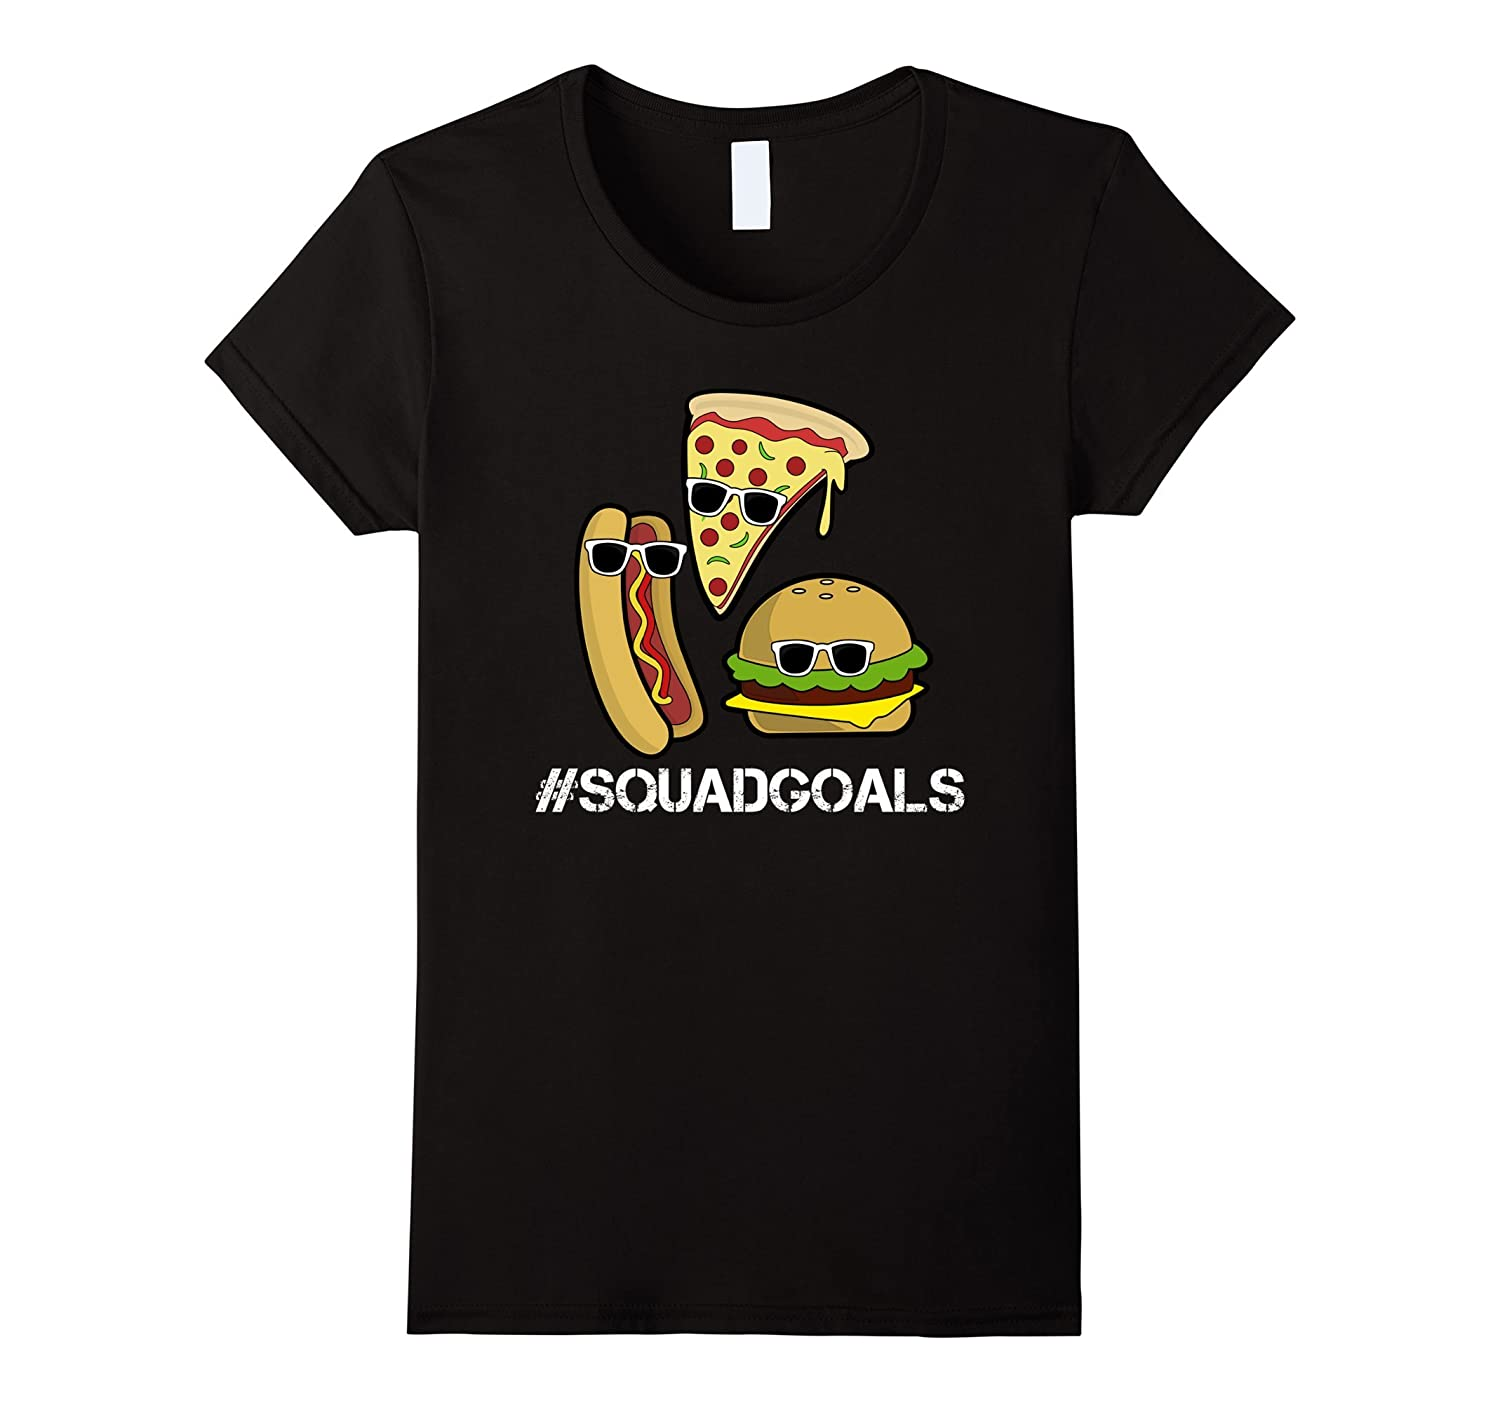 #SquadGoals T-shirt Squad Goals Funny Burger Hot Dog Pizza